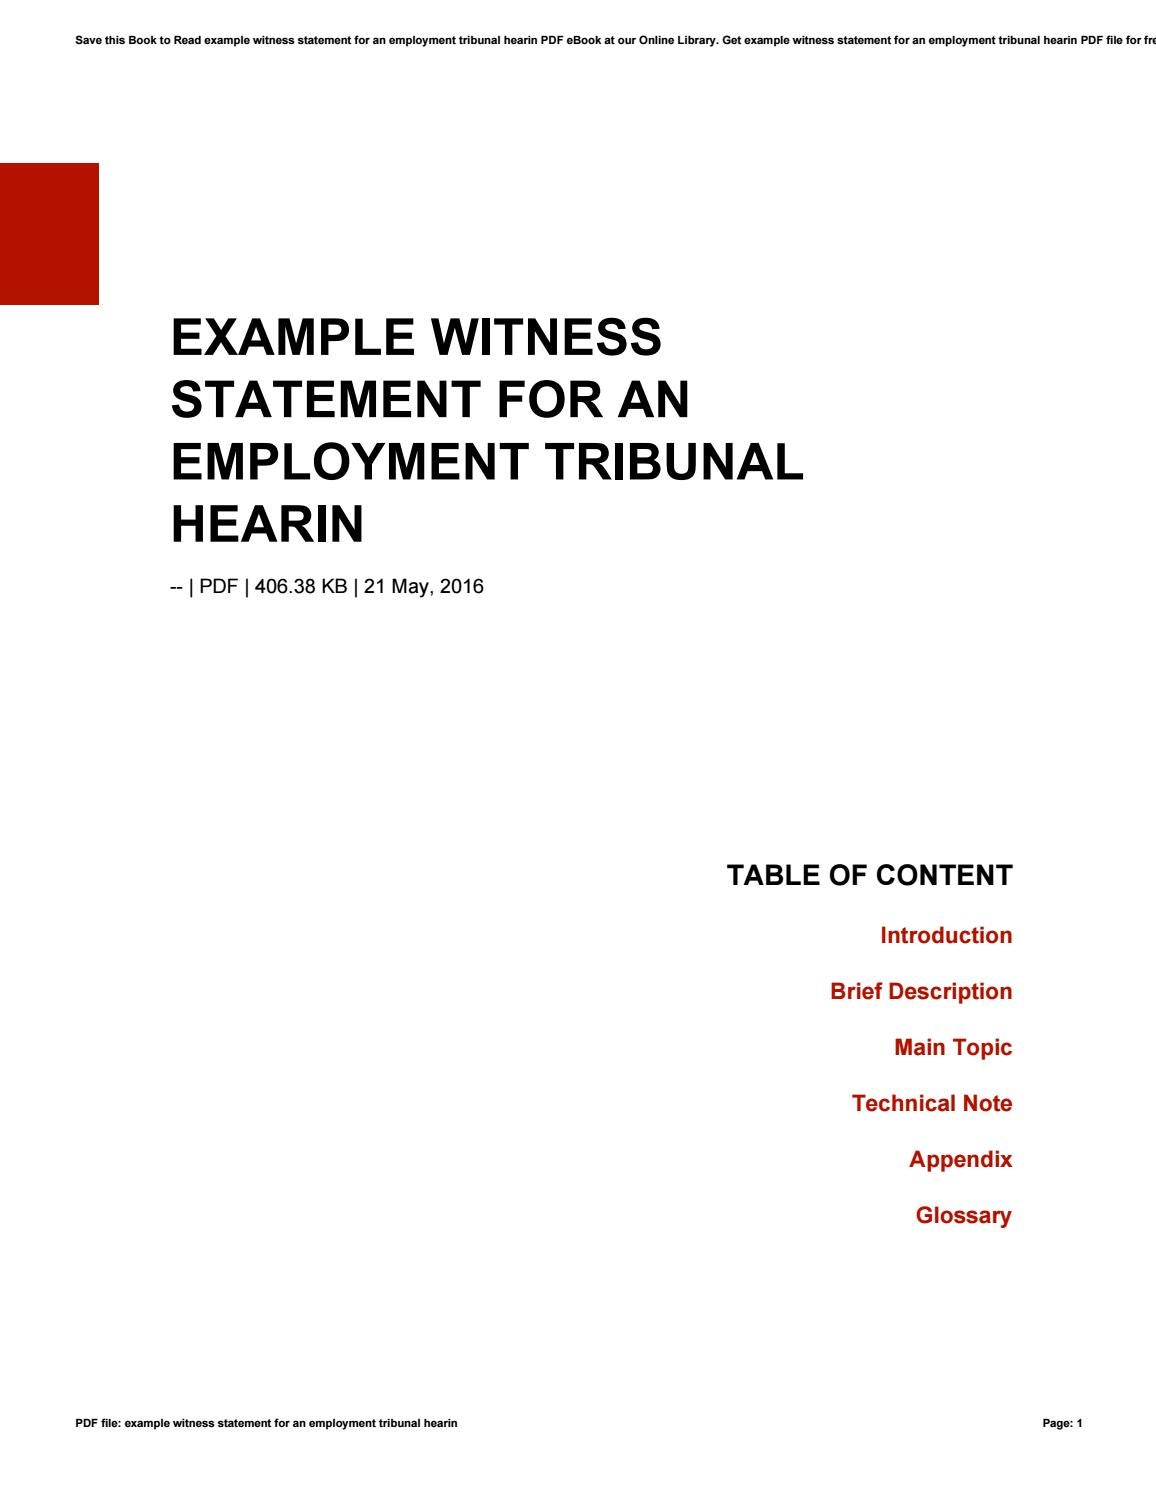 Example witness statement for an employment tribunal hearin by example witness statement for an employment tribunal hearin by tenarivera1758 issuu altavistaventures Choice Image